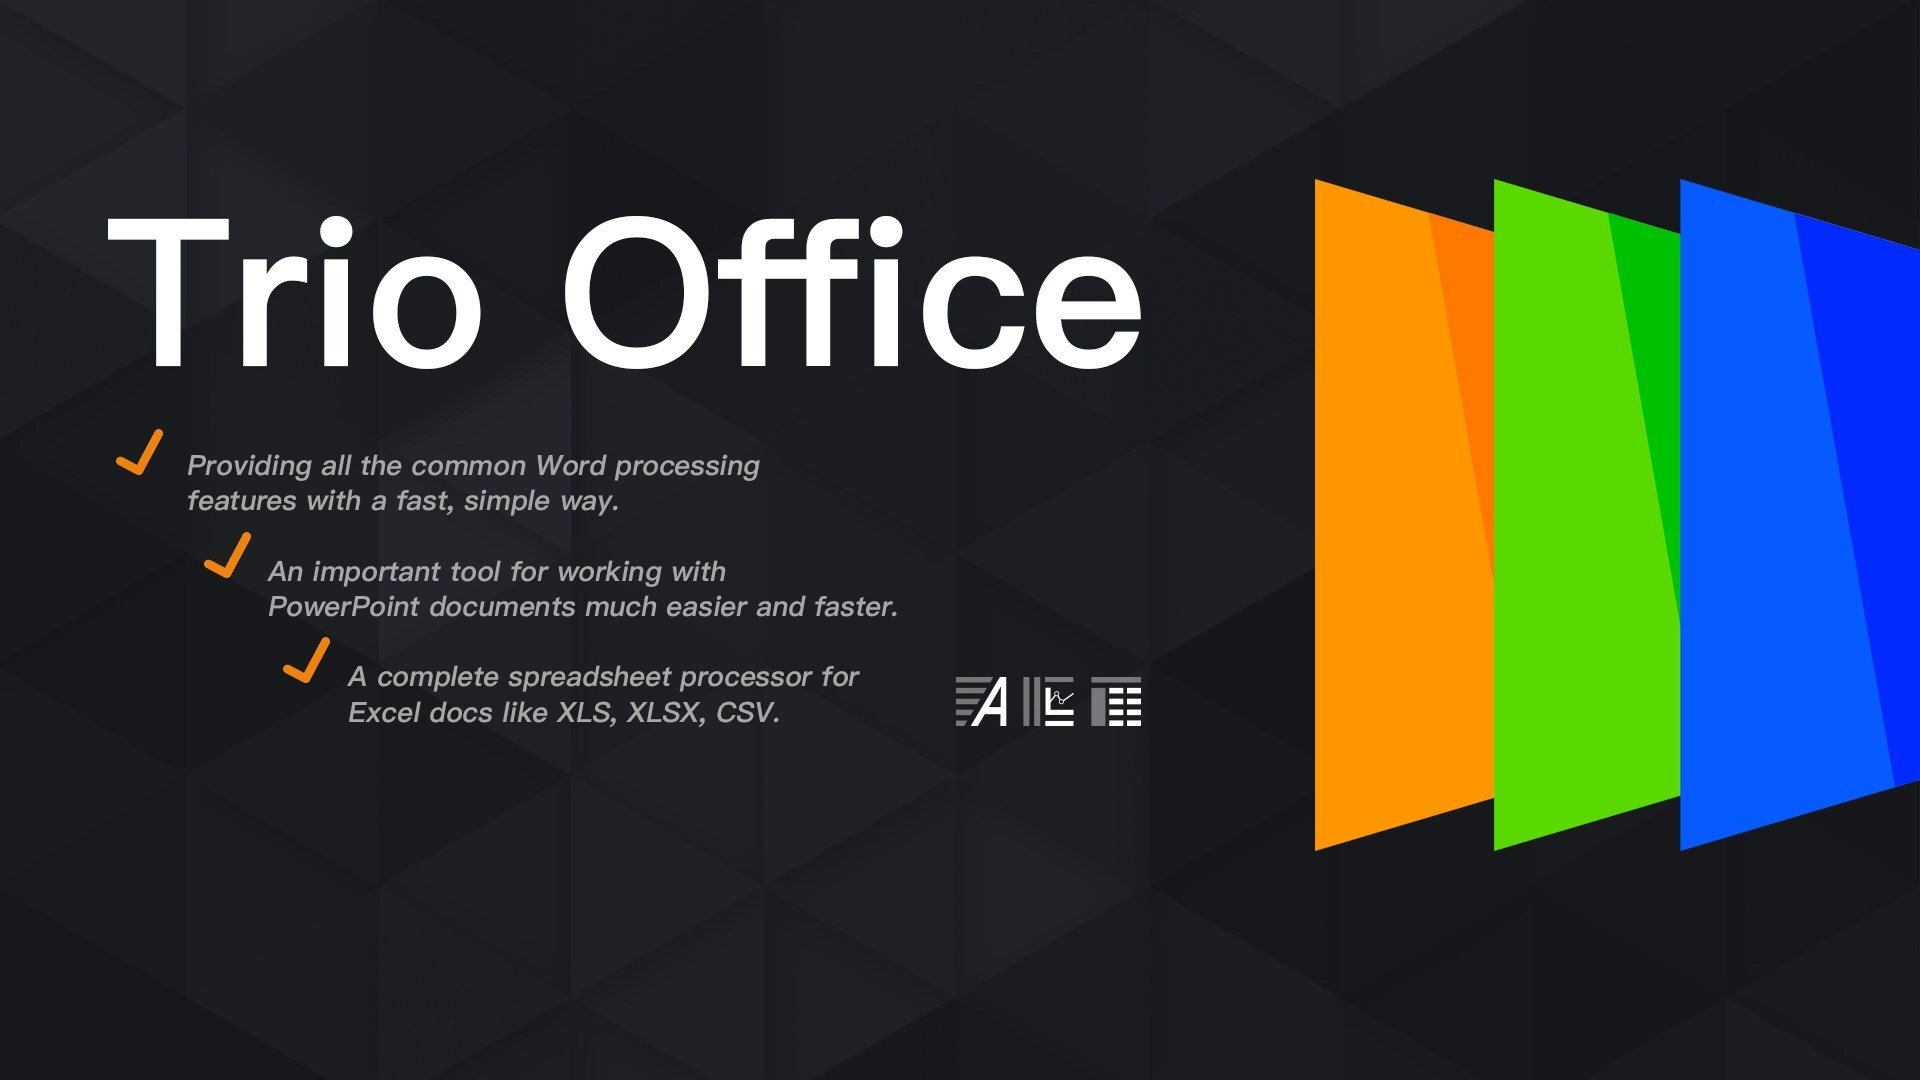 Download Trio Office For Windows 10